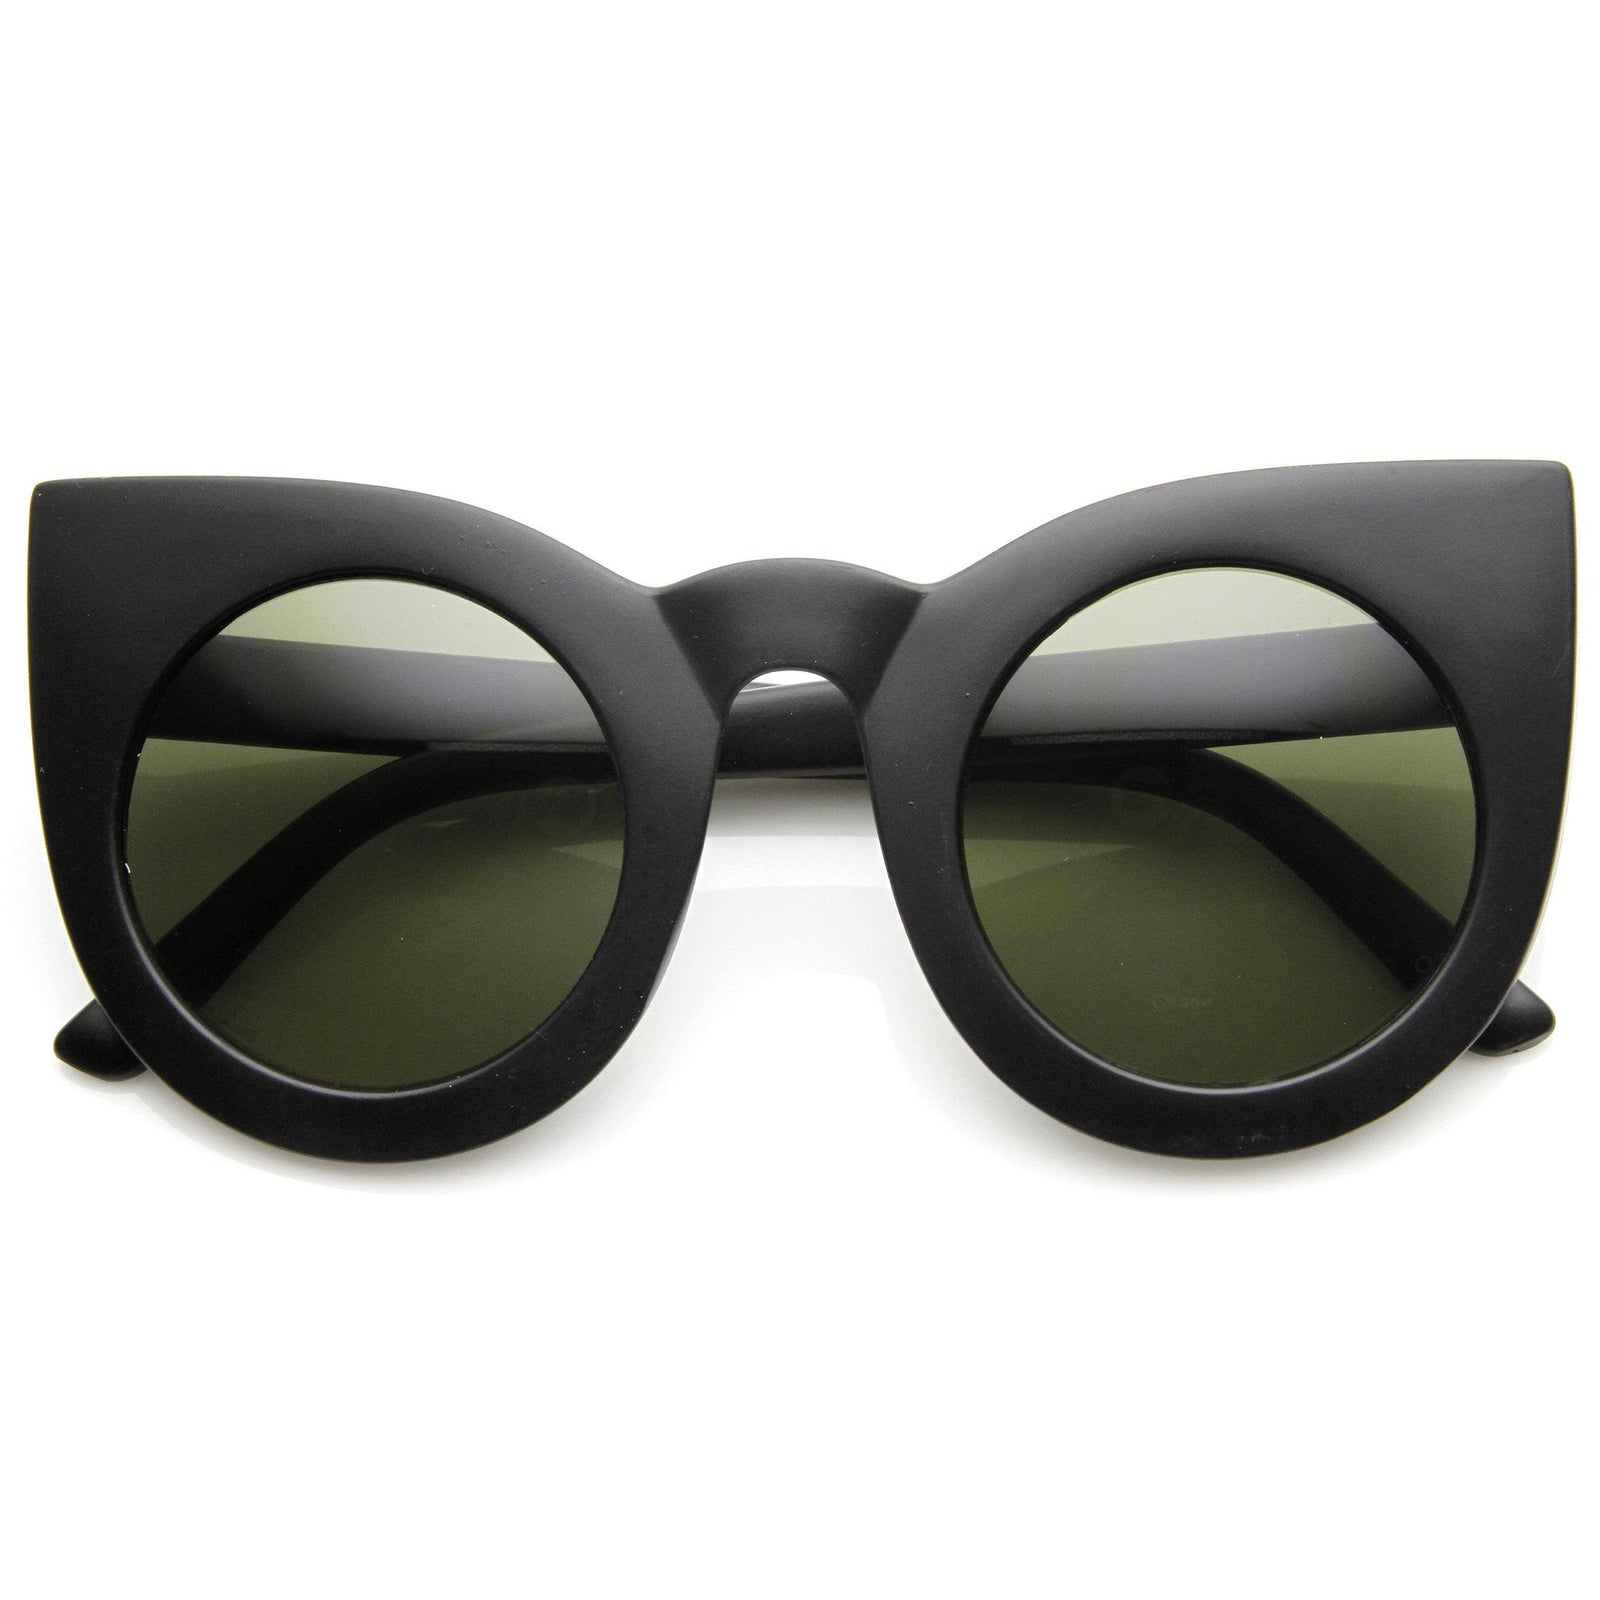 567918e756 Retro Women s Cat Eye Sunglasses Tagged